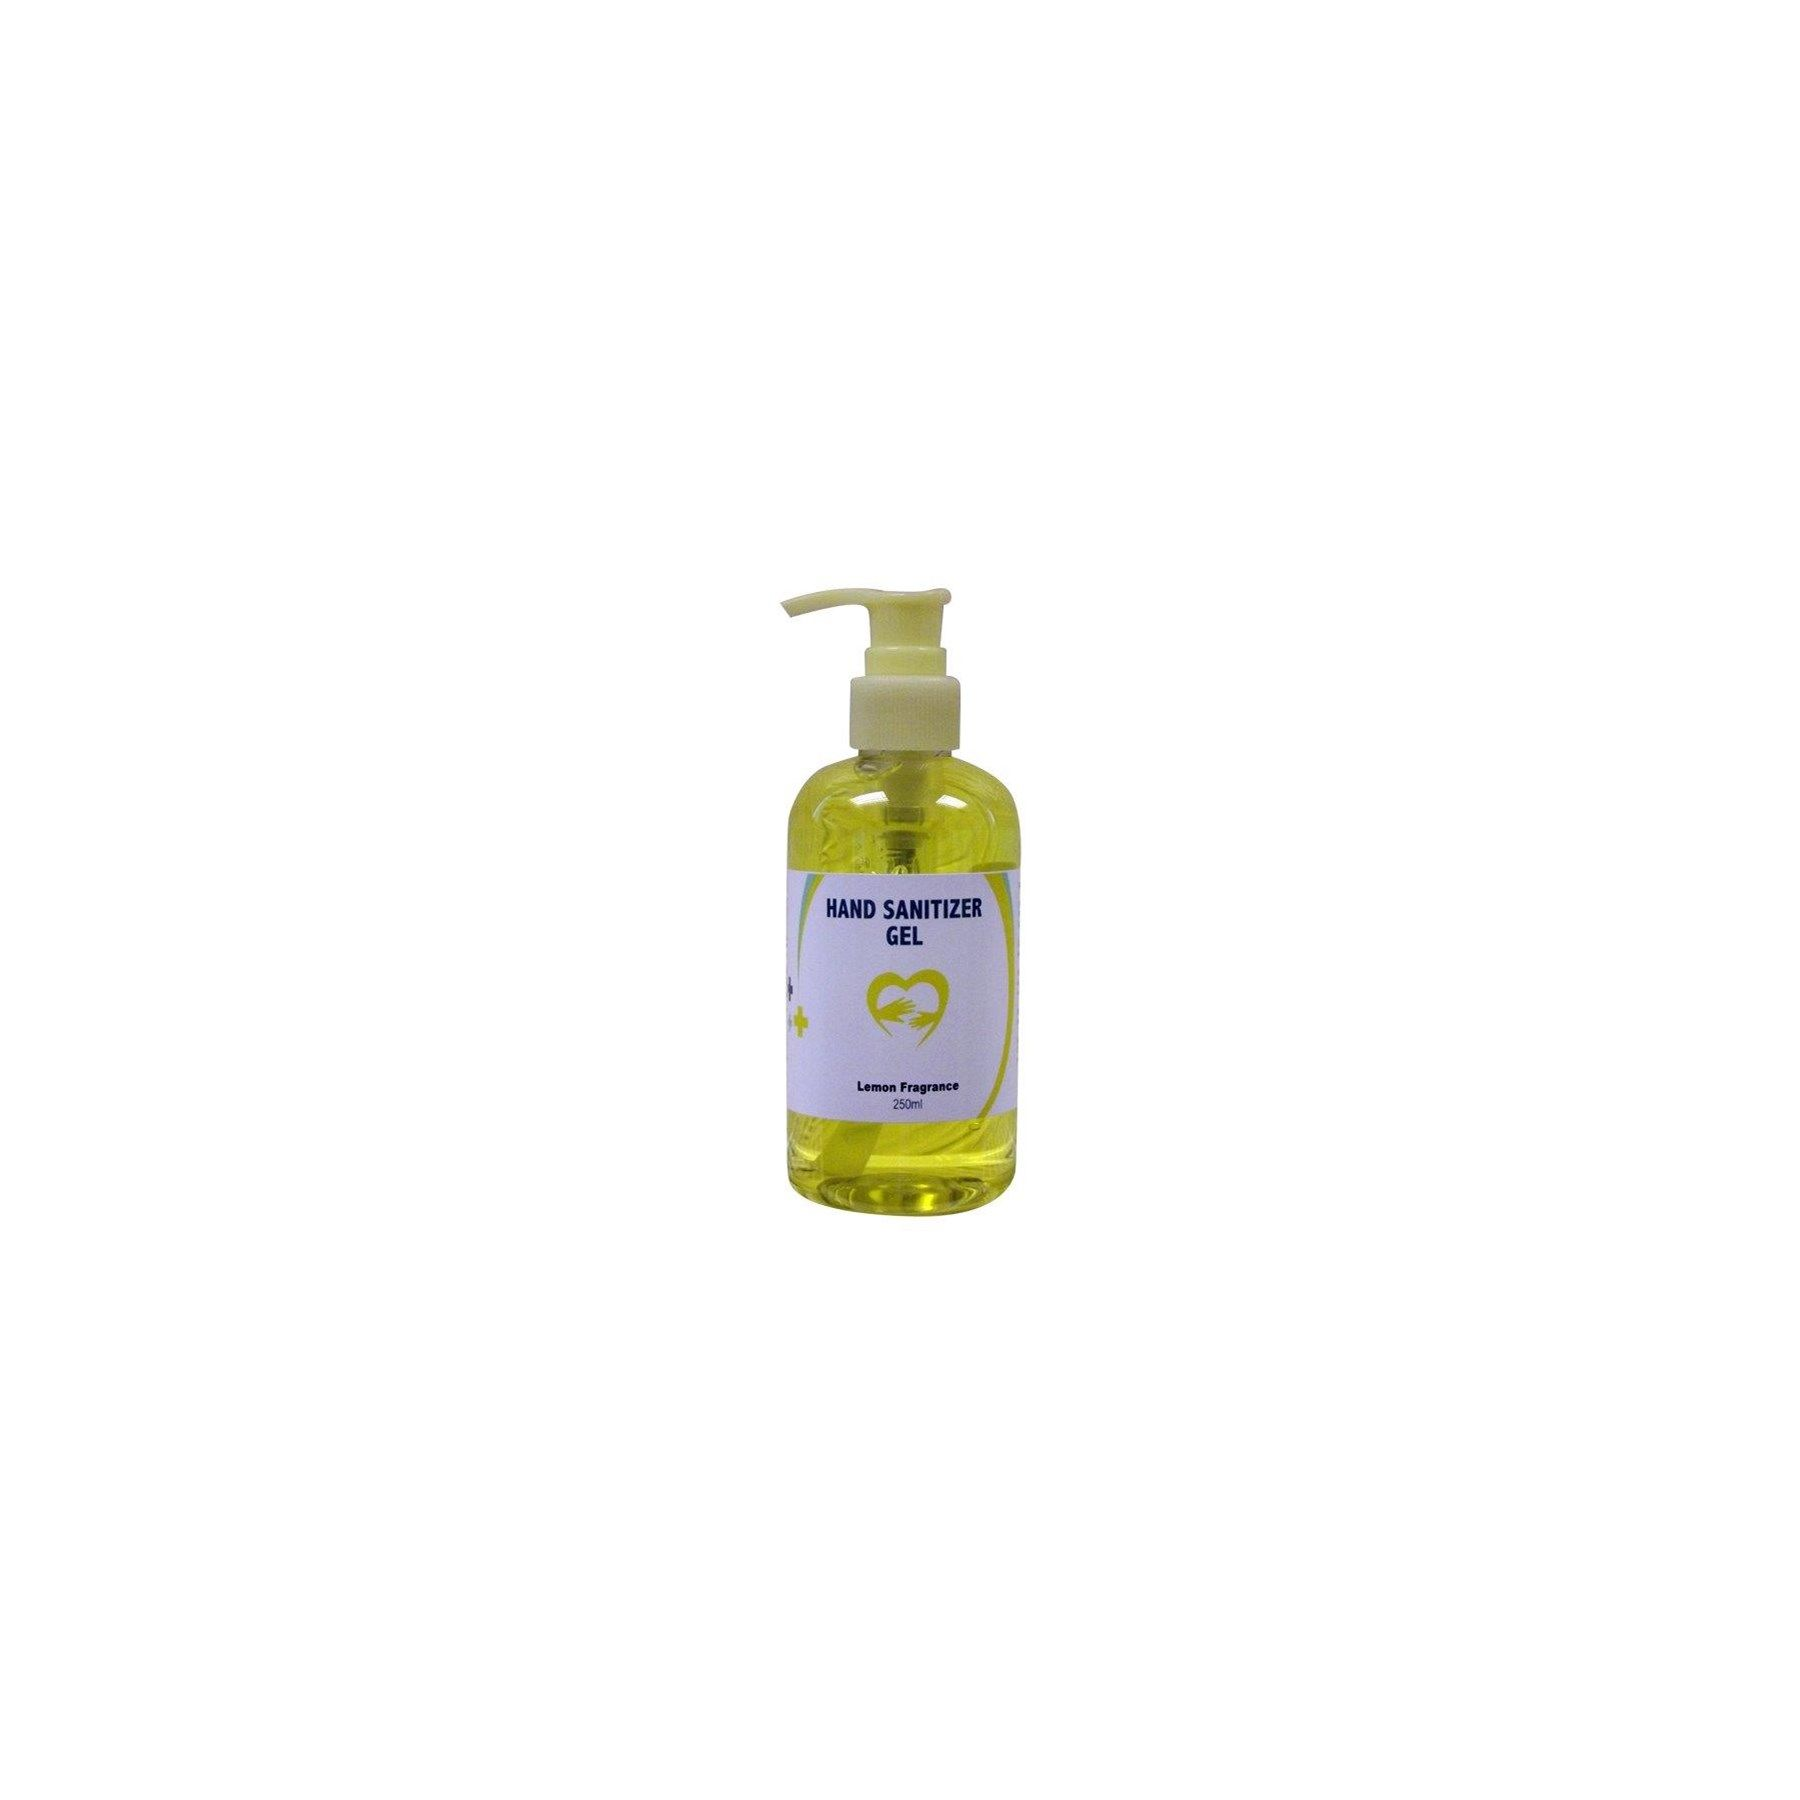 Hand Sanitizer Gel Lemon 250ml Handsanlem12 Hand Sanitizer